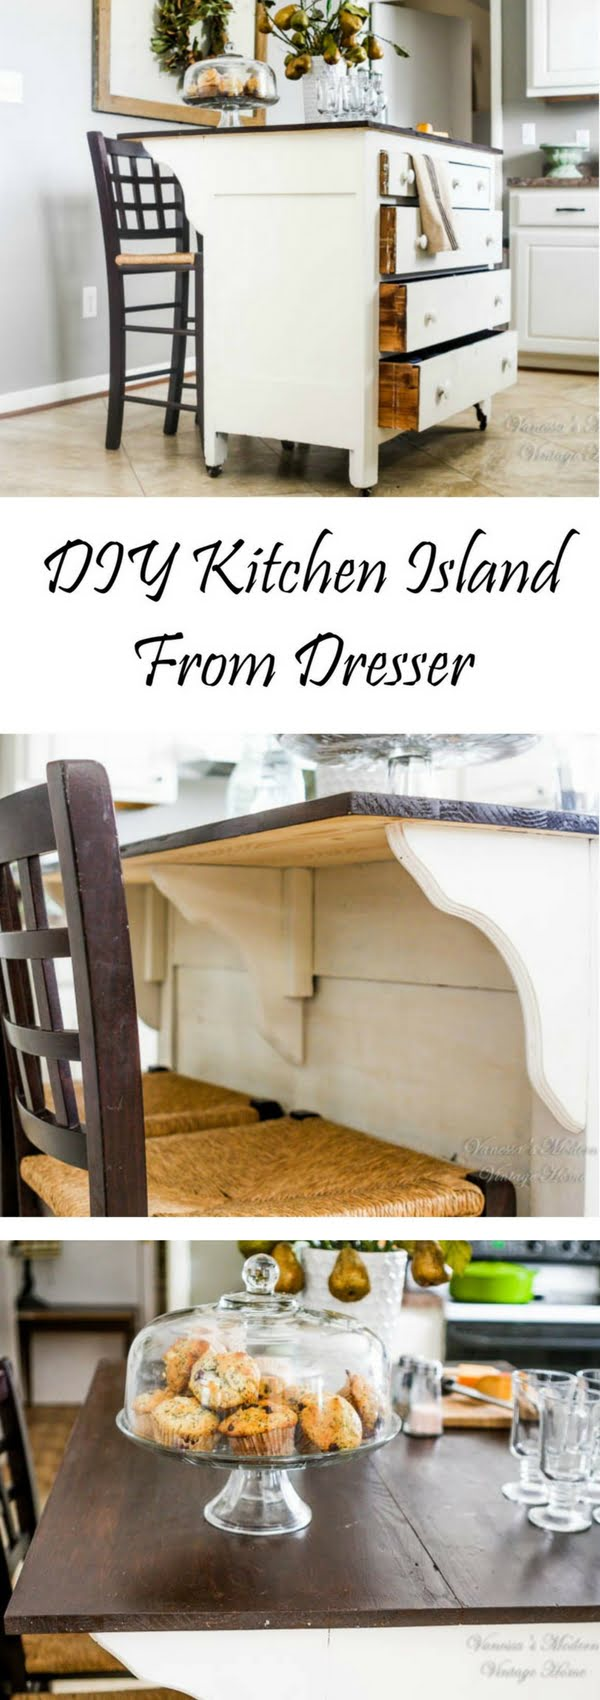 25 Easy DIY Kitchen Island Ideas That You Can Build on a Budget - Check out the tutorial on how to build a DIY kitchen island from a dresser